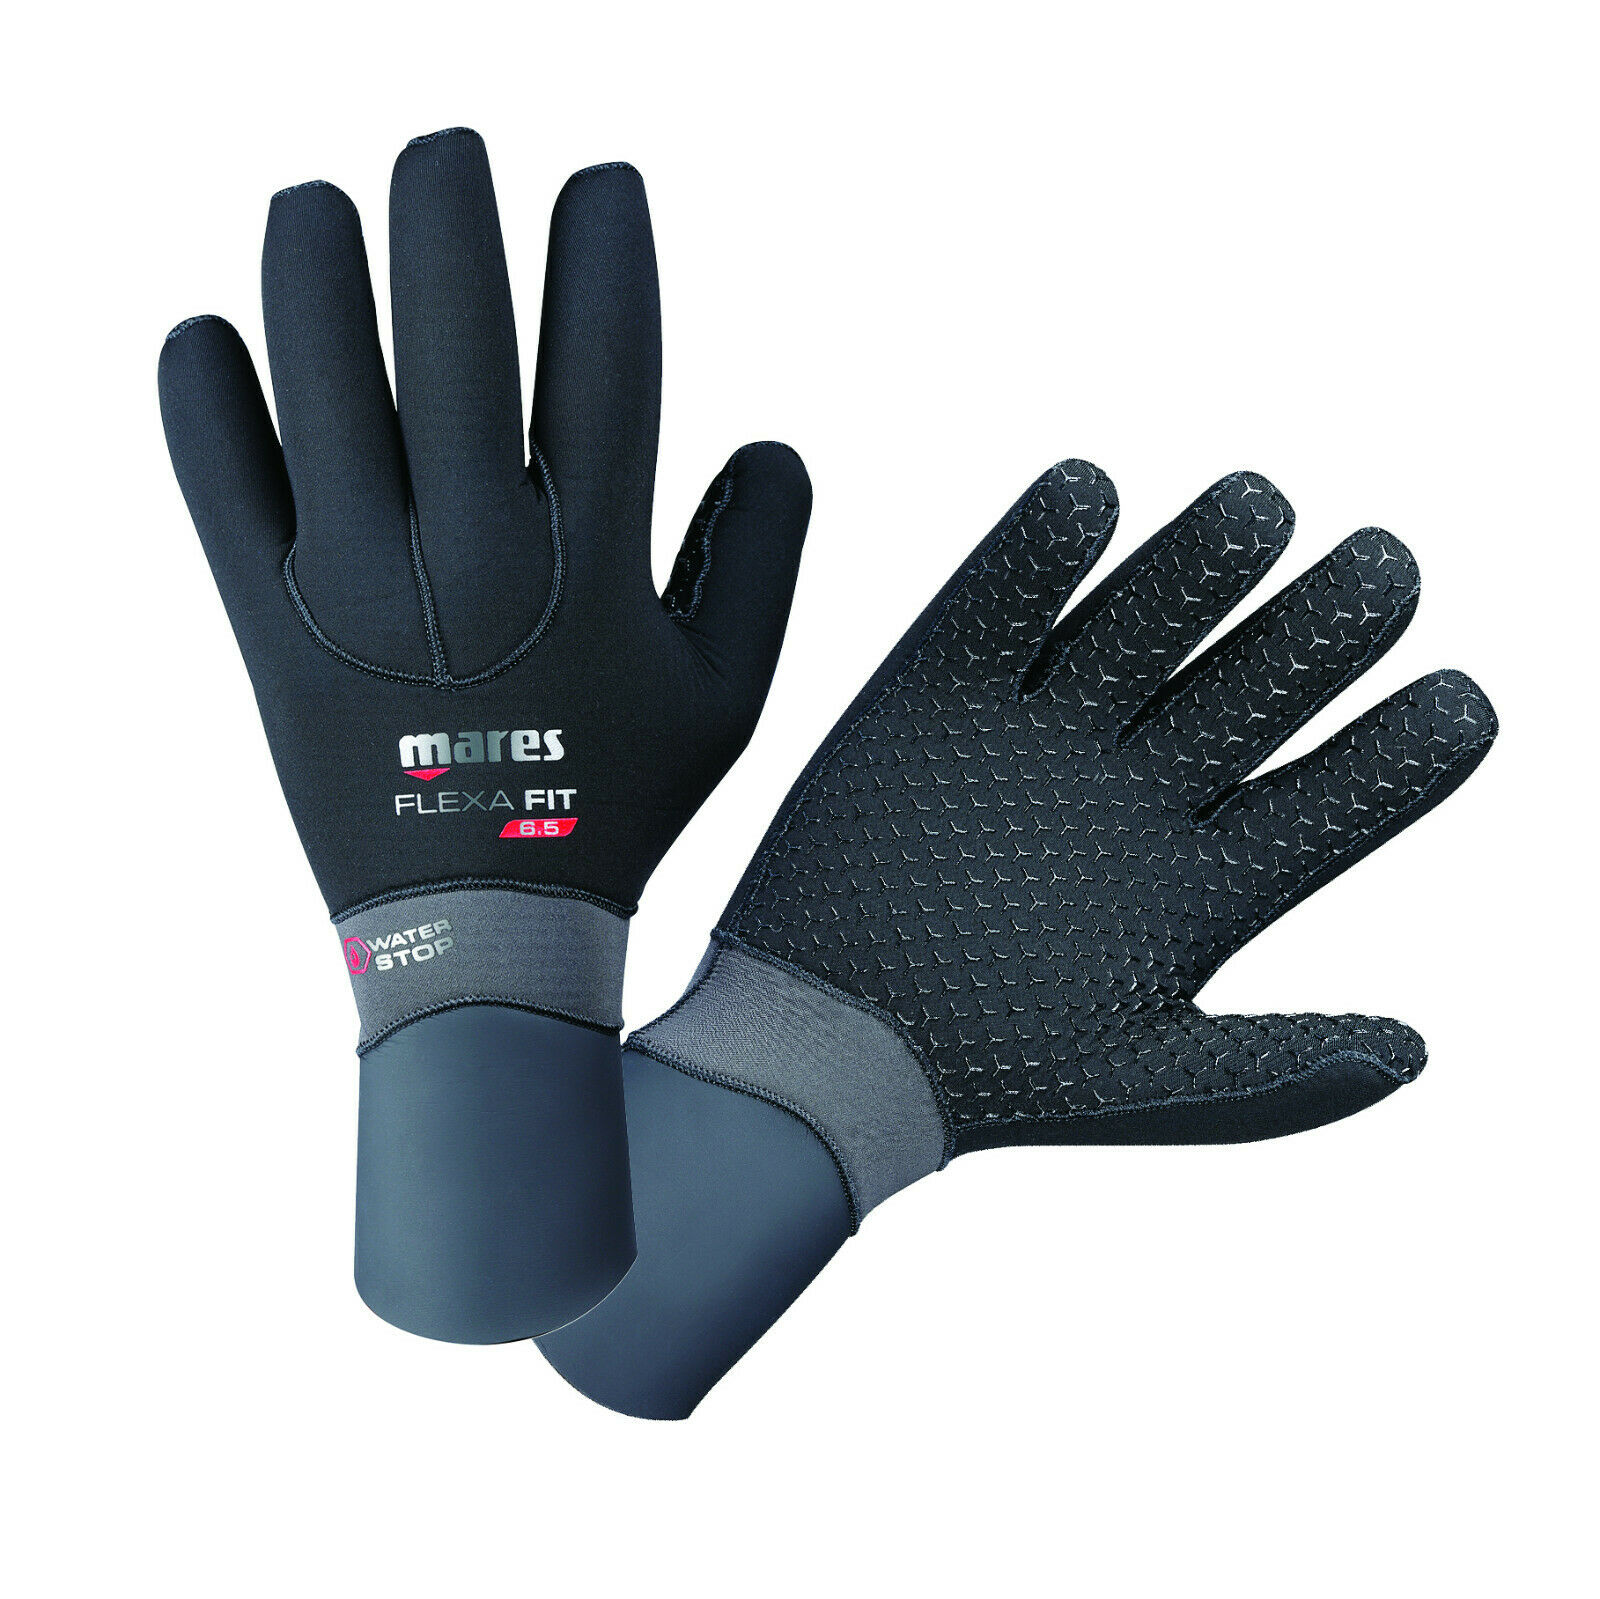 Mares Mares Mares Flexa Fit Glove 6,5mm Handschuhe 2f30e0